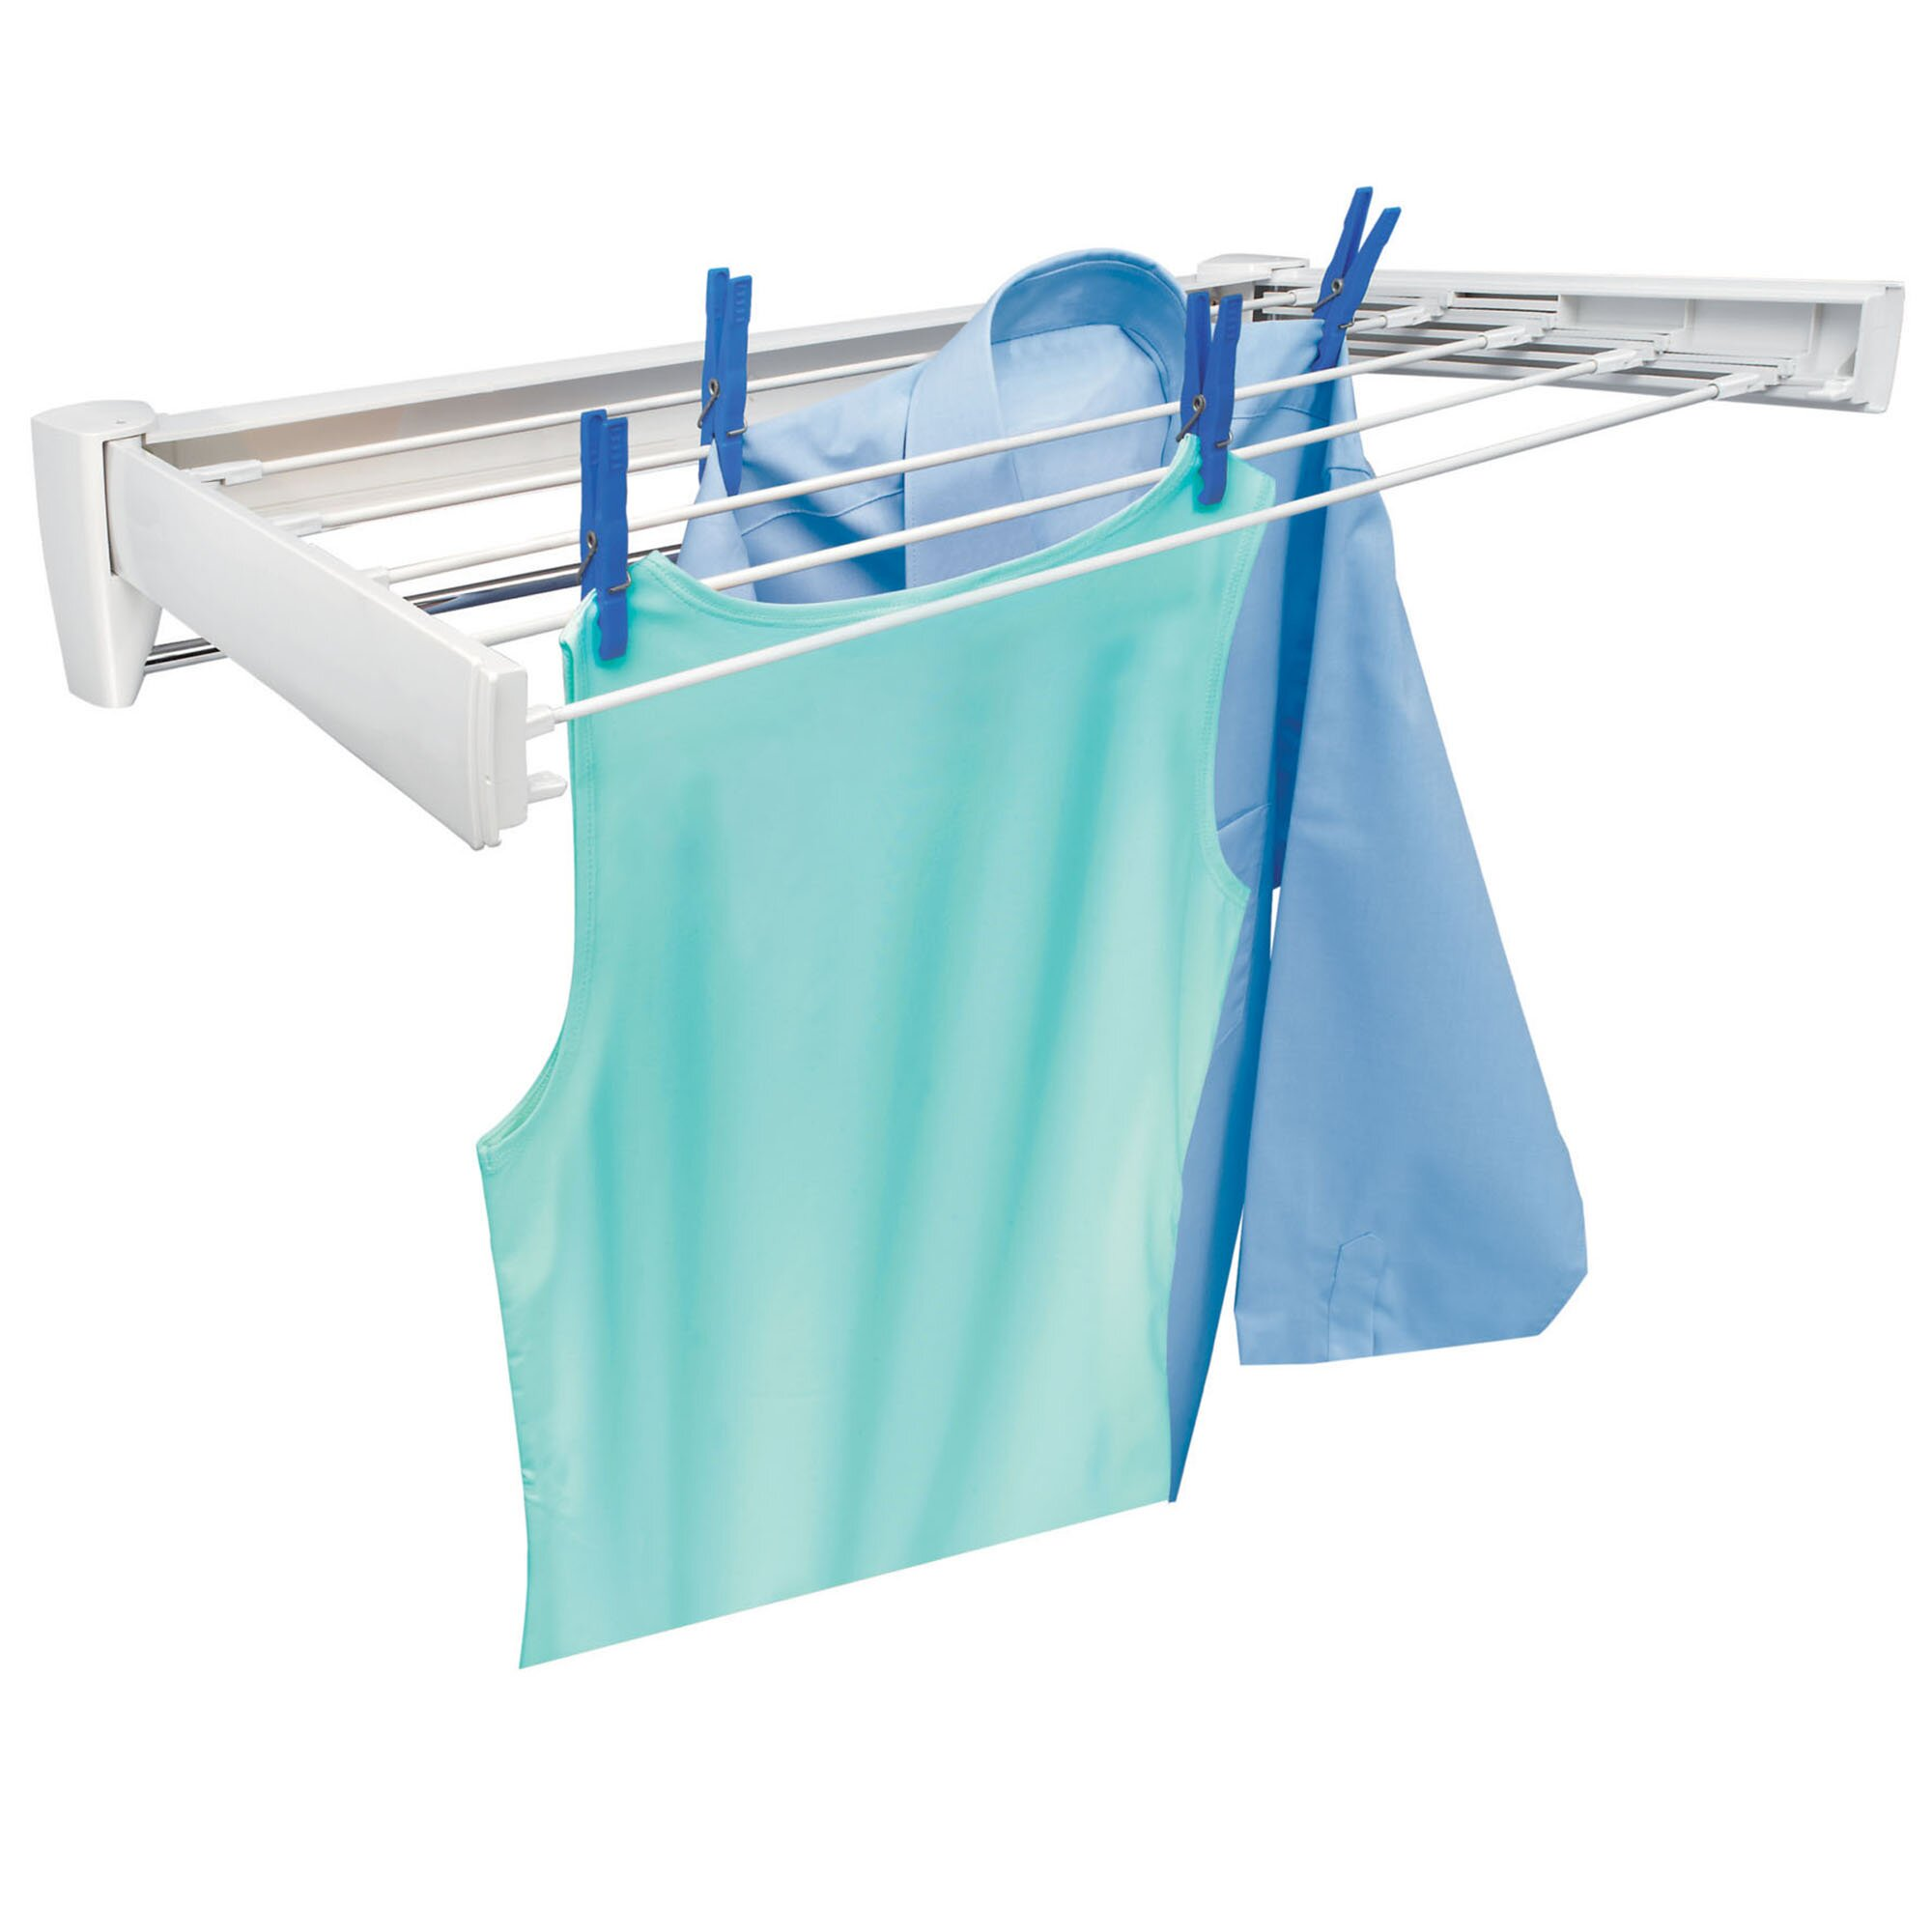 ... 70 Retractable Wall Mount Clothes Drying Rack with Towel Bar  Wayfair